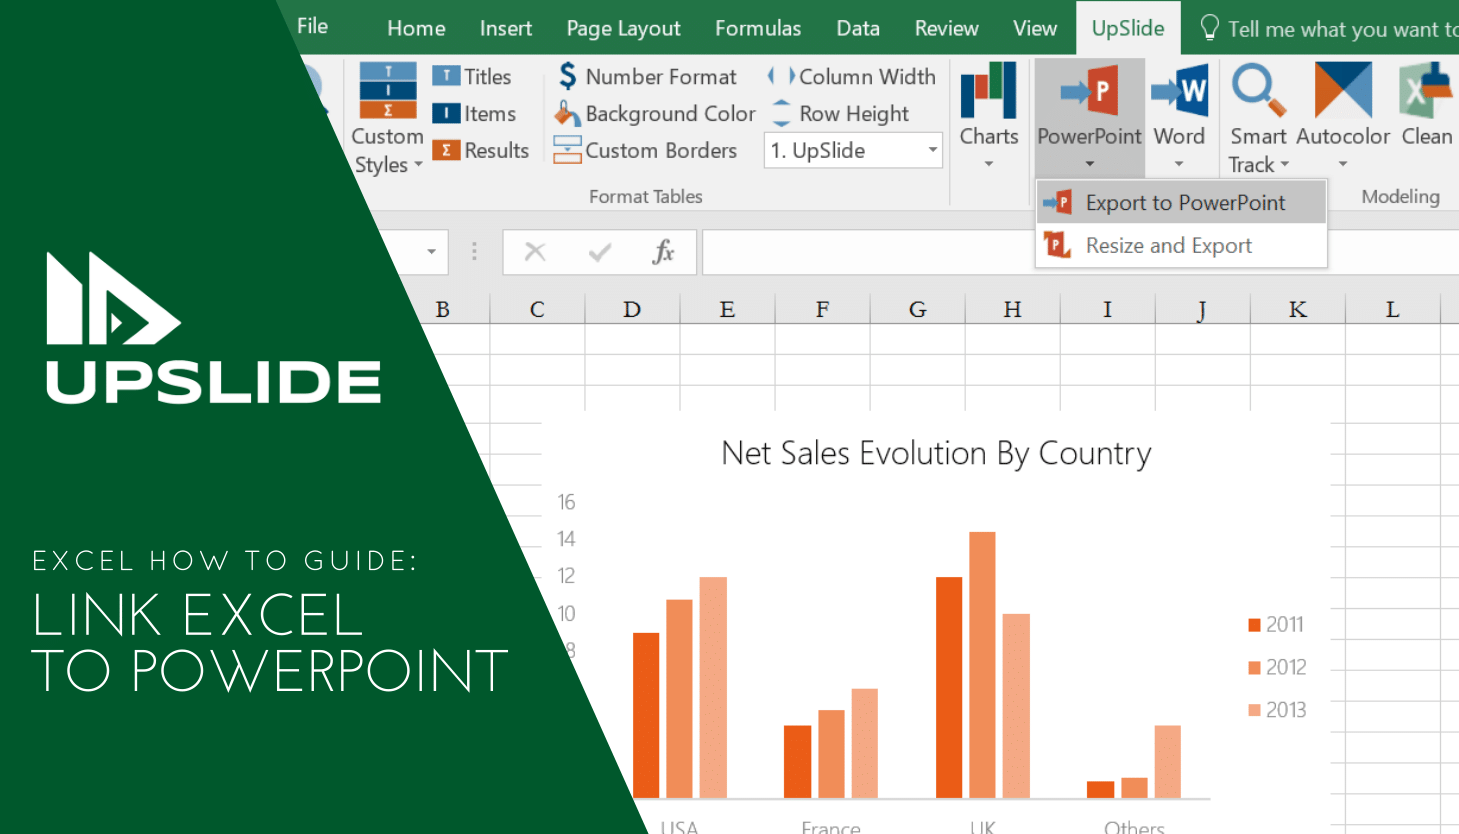 Workbooks how to pull data from another workbook in excel : Excel How To Guide: Link Excel to PowerPoint